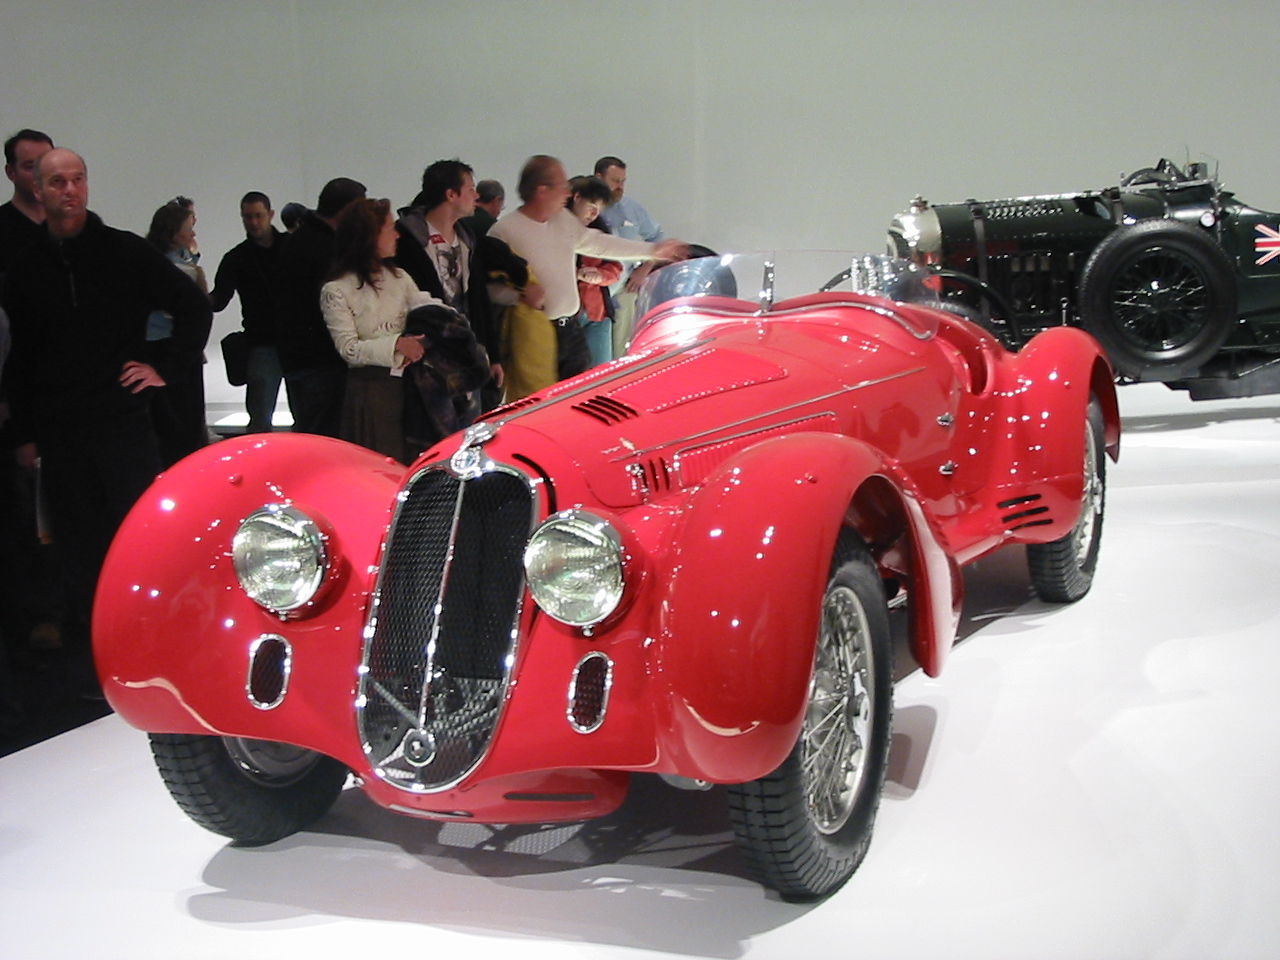 Alfa Romeo 8C2900 B Mille Miglia. This particular car finished second in the 1938 Mille Miglia race and then was sold to someone in California where it was raced successfully by Phil Hill.